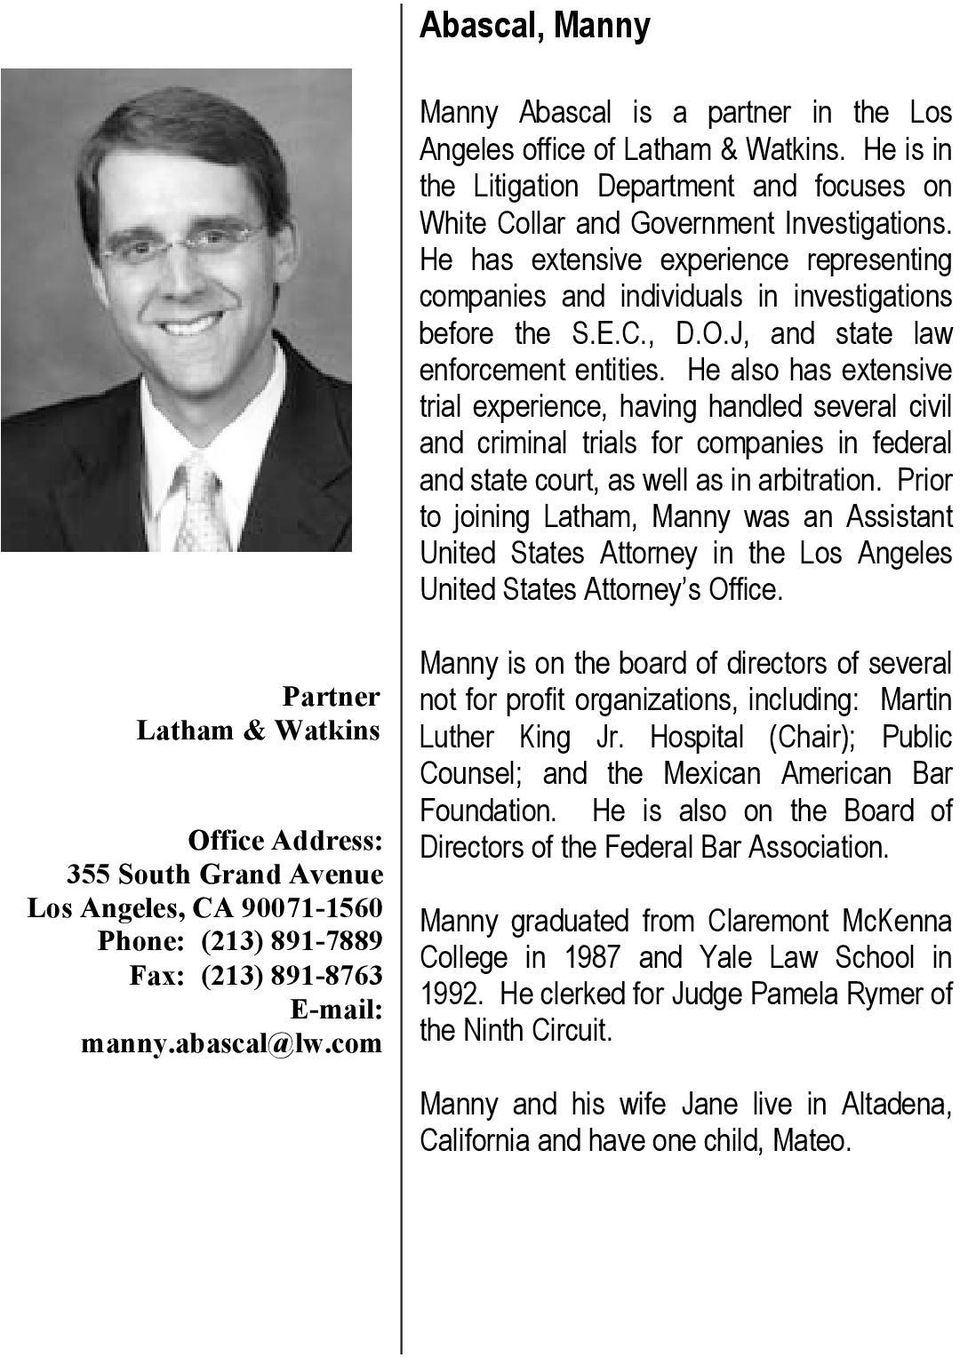 He is in Litigation Department focuses on White Manny Collar Abascal Government is is a partner Investigations. in Los He Angeles has fice extensive Latham experience & Watkins.